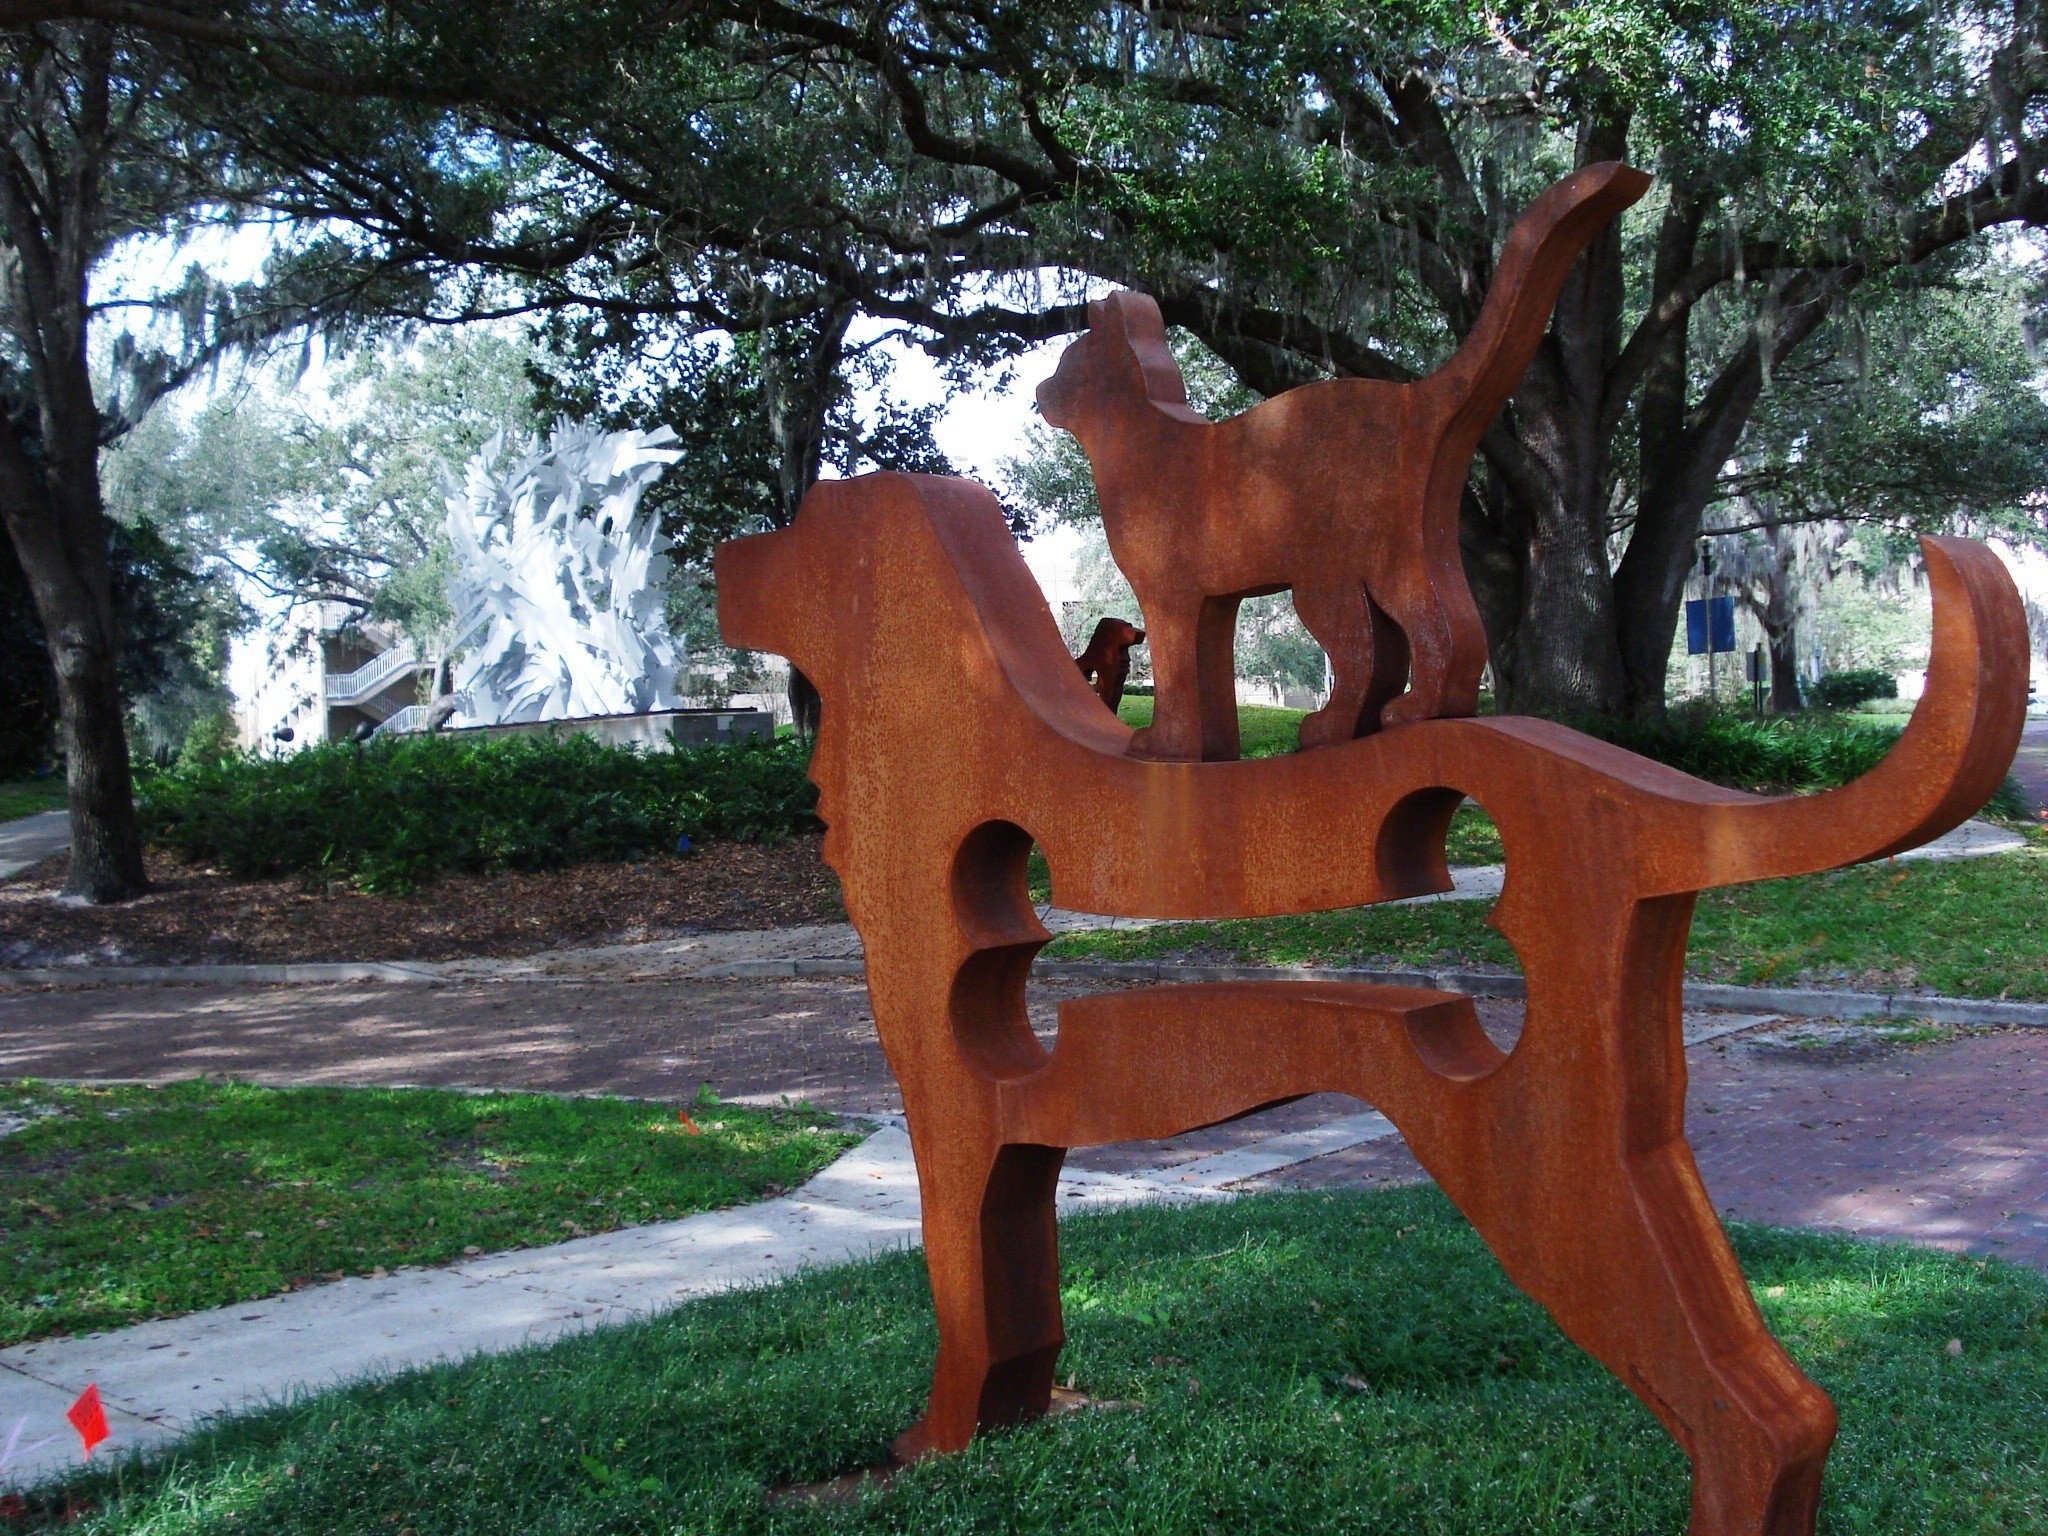 A cat stowed away on this Dale Rogers sculpture at the Mennello, part of the Big Dog Show.